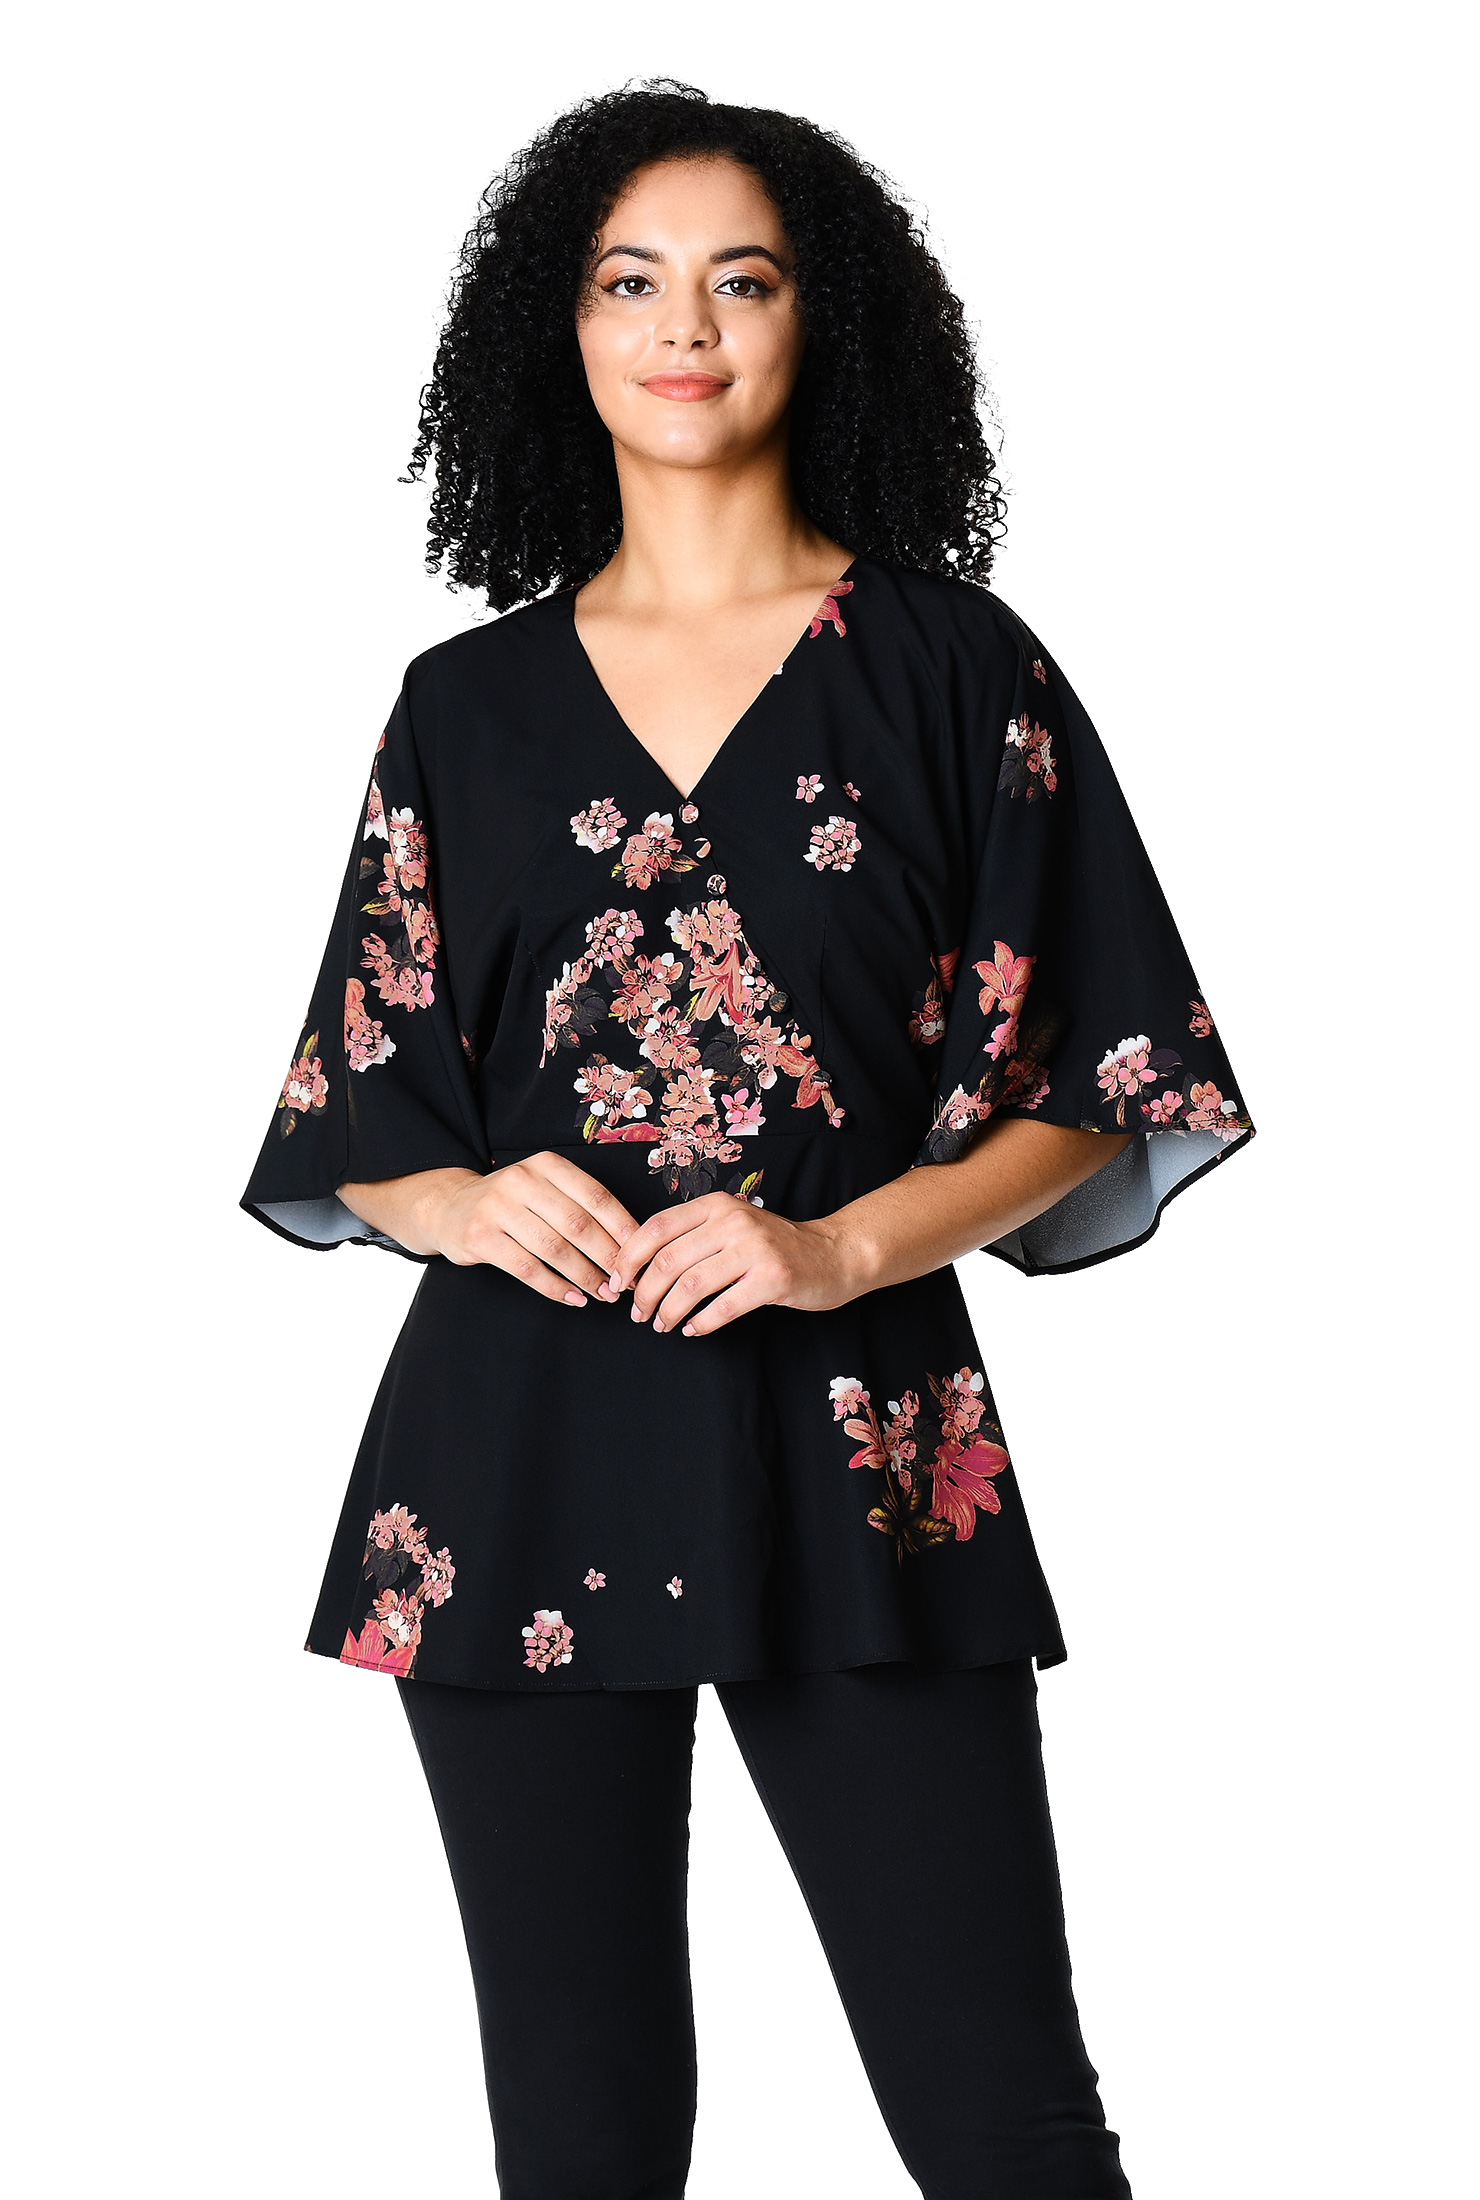 d3aaa7d832944 Women s Fashion Clothing 0-36W and Custom